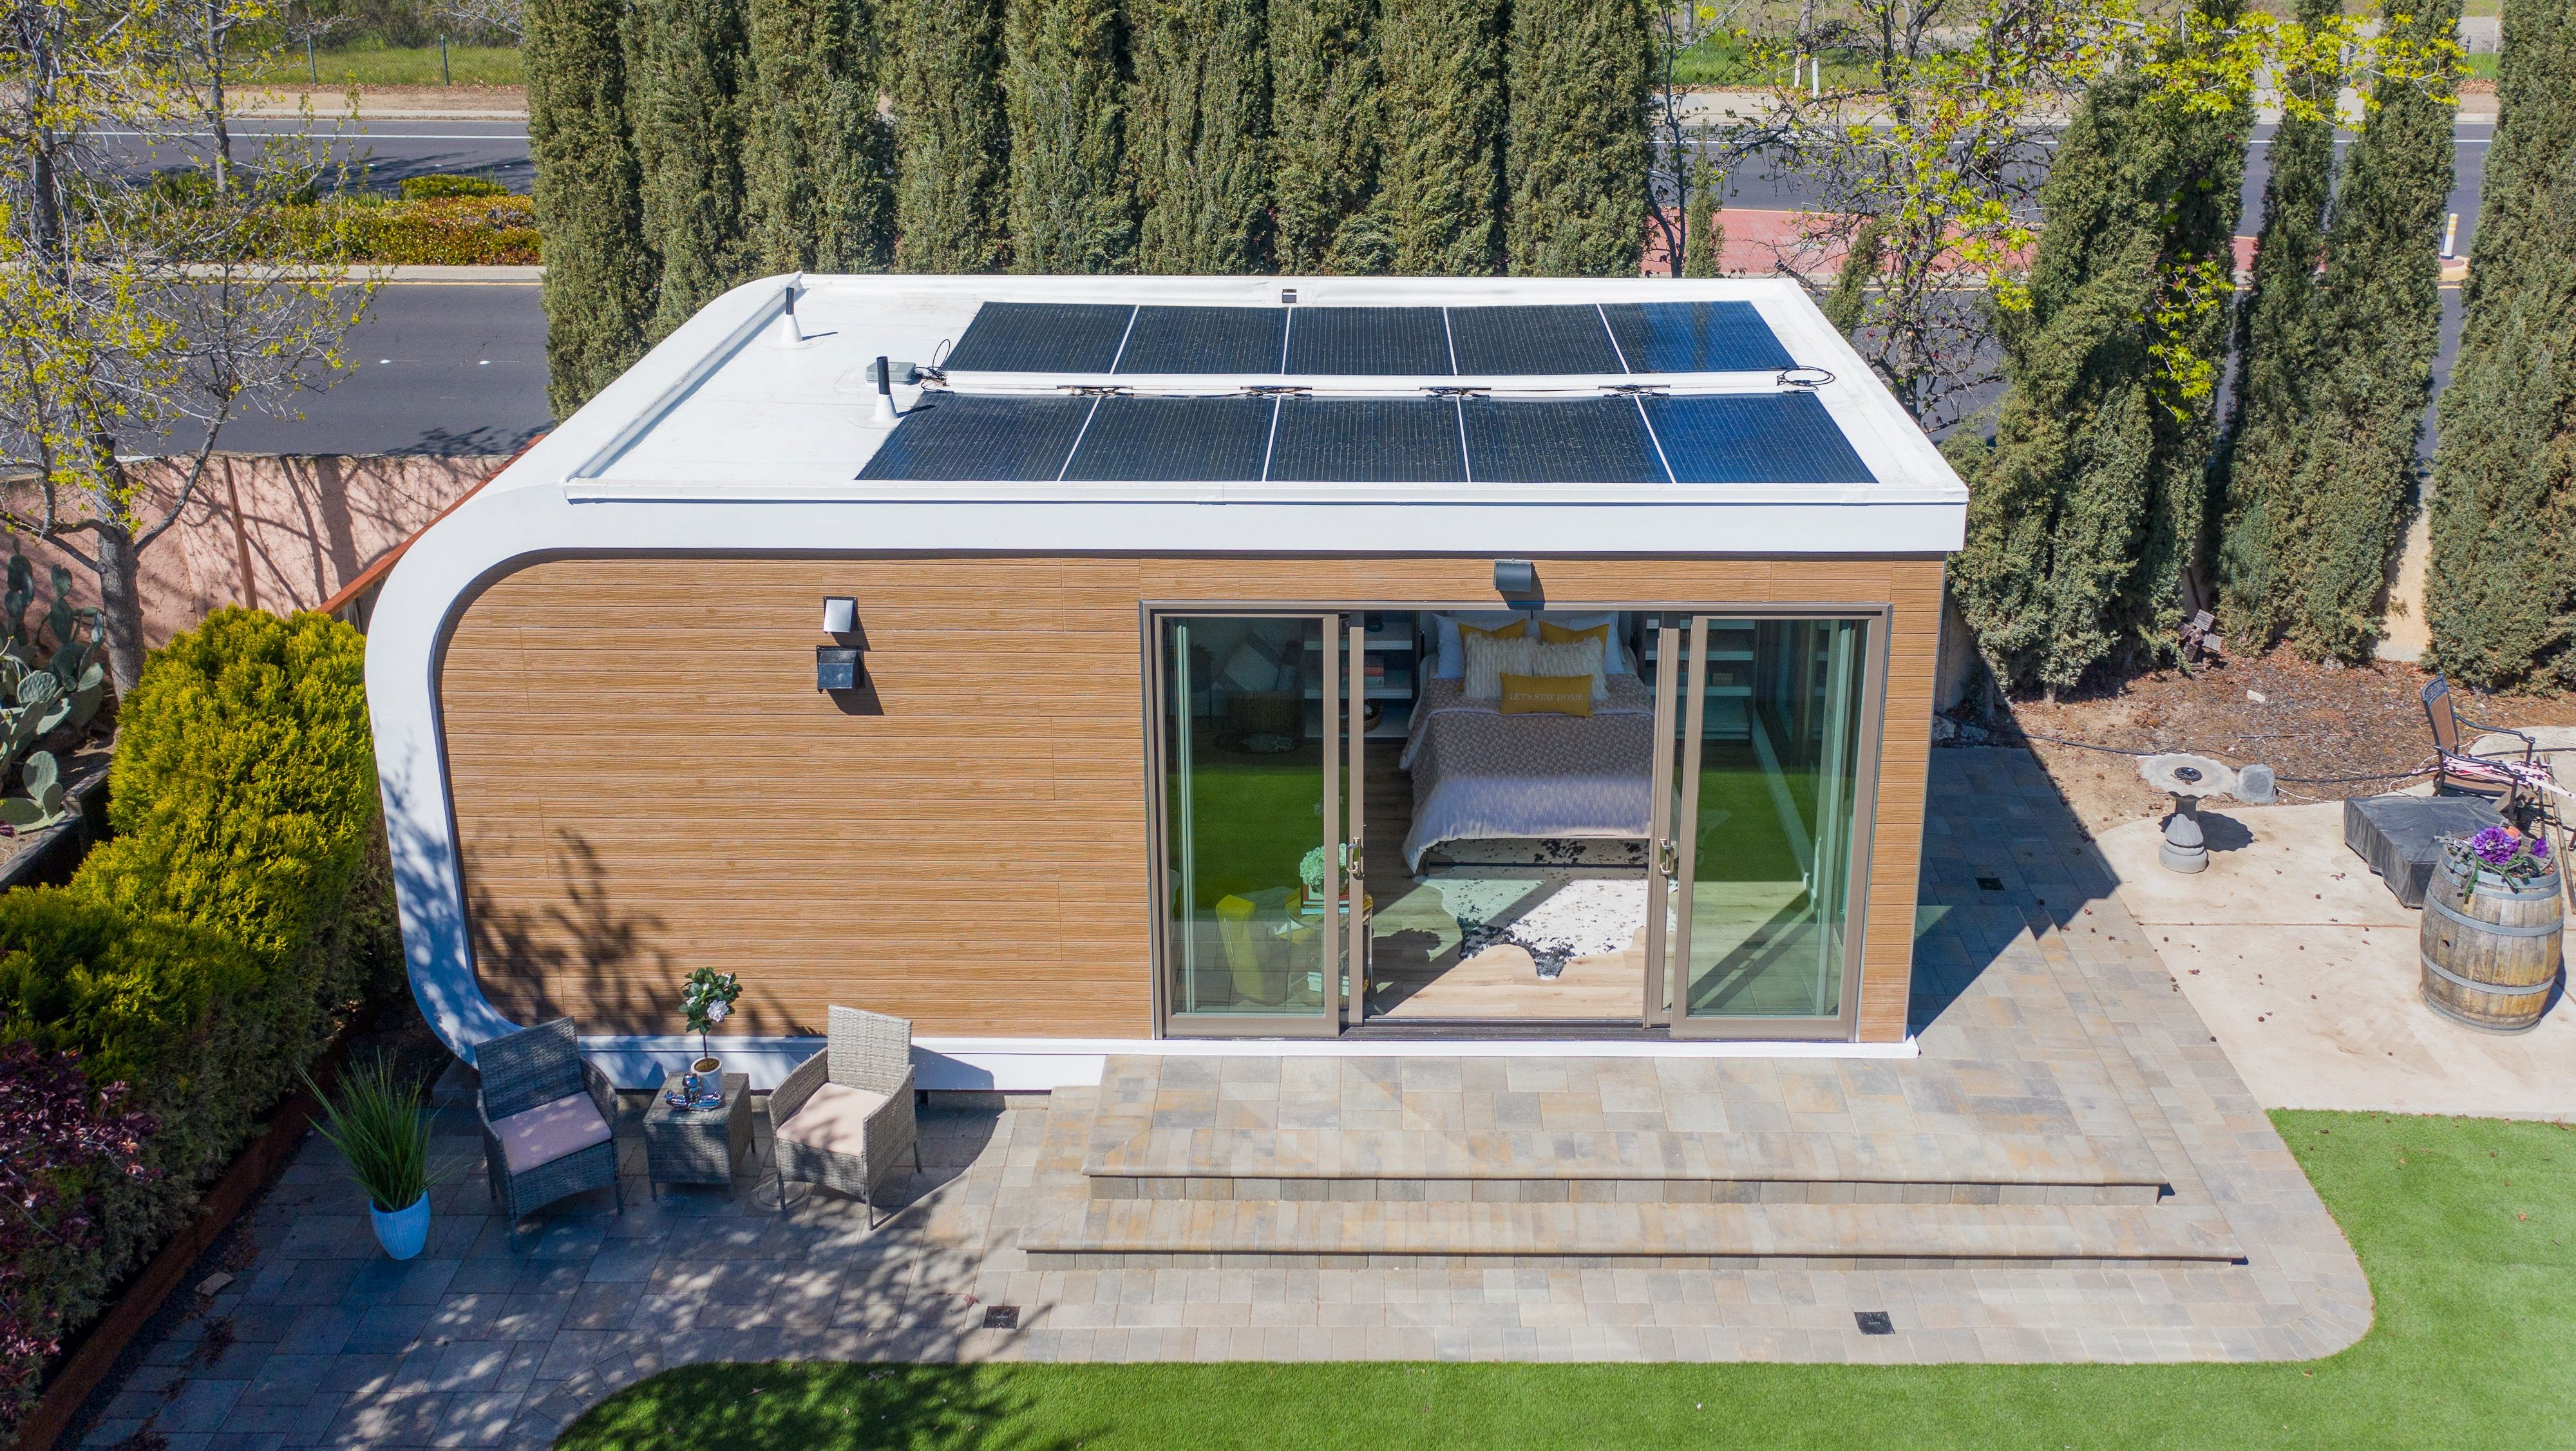 Seen in this photo is a studio home model 3D-printed by Mighty Buildings.